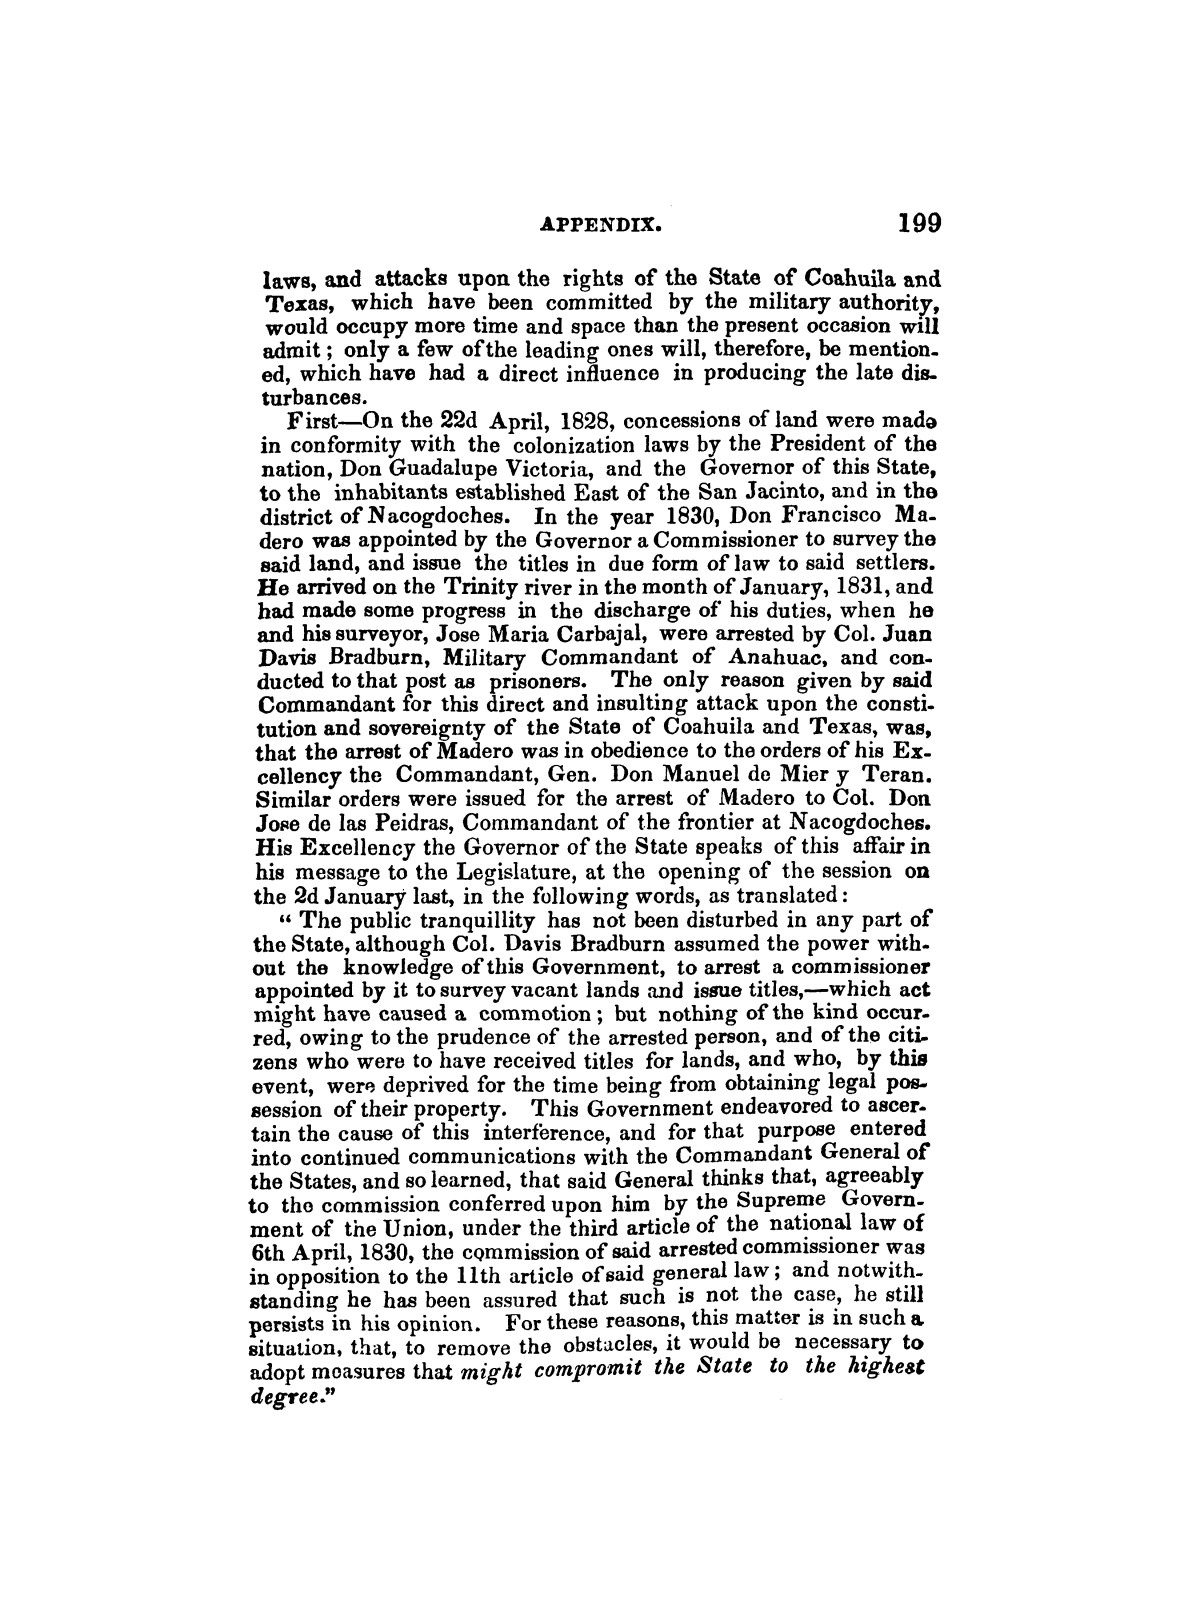 History of the Revolution in Texas, Particularly of the War of 1835 & '36; Together With the Latest Geographical, Topographical, and Statistical Accounts of the Country, From the Most Authentic Sources. Also, an Appendix.                                                                                                      [Sequence #]: 211 of 227